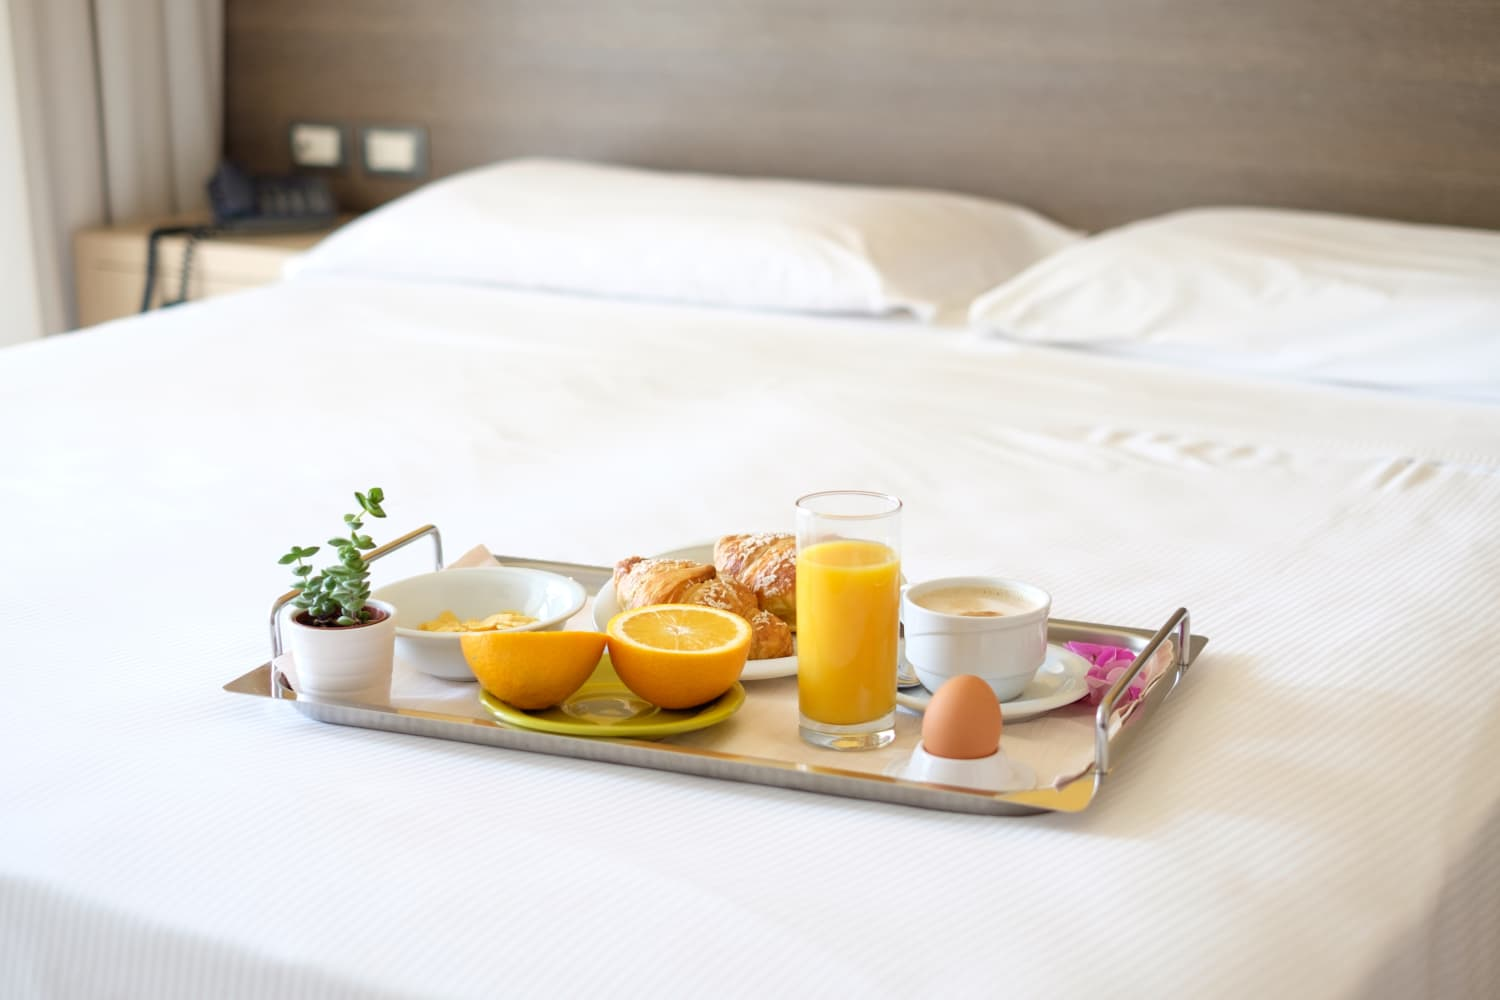 Room Service: 5 Things Food-Lovers Do When Ordering Room Service